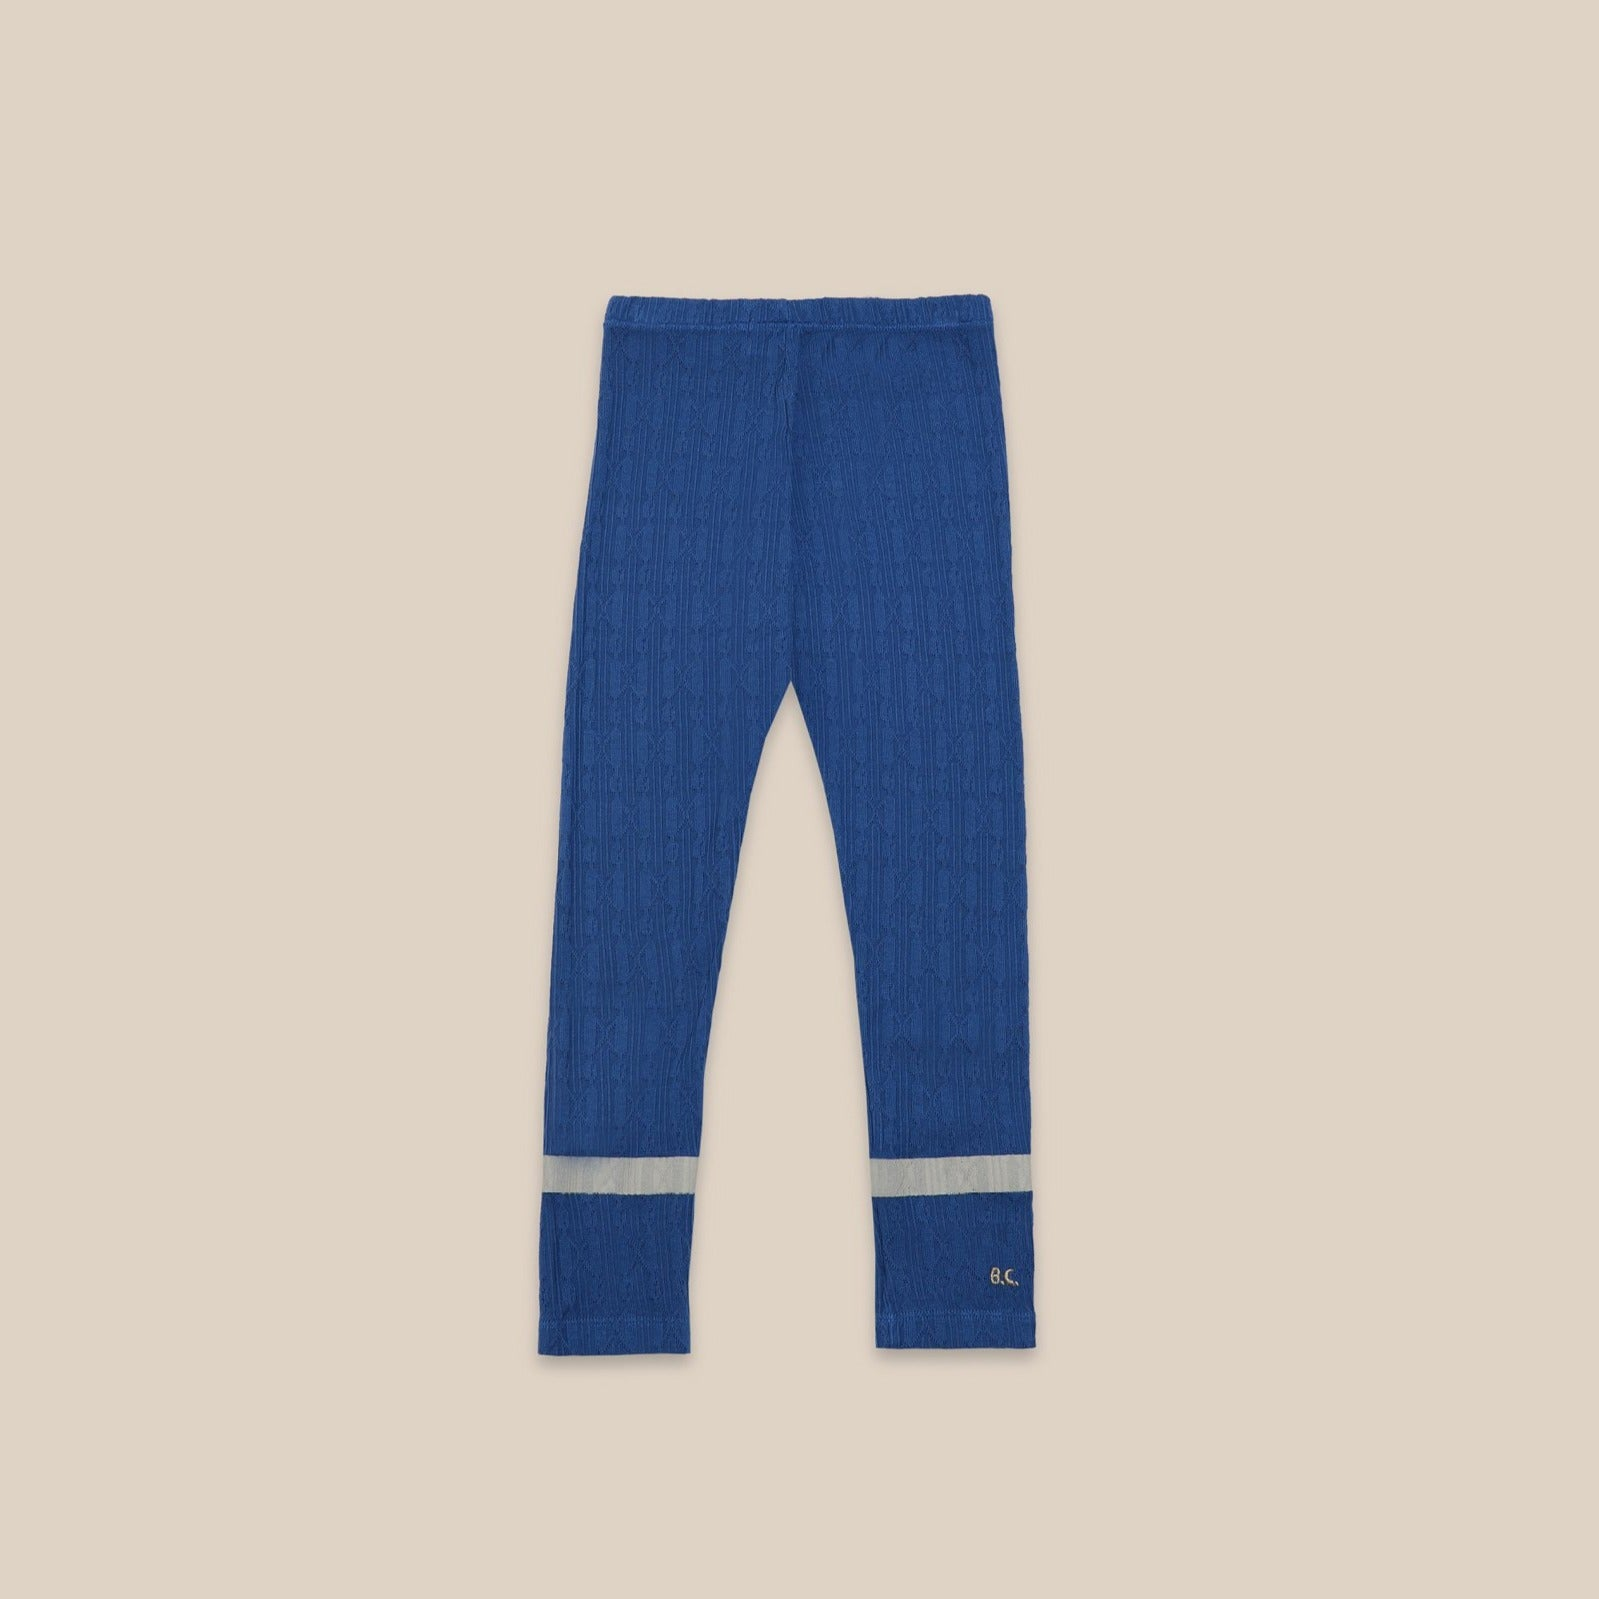 Bobo Choses bi color leggarit, electric blue